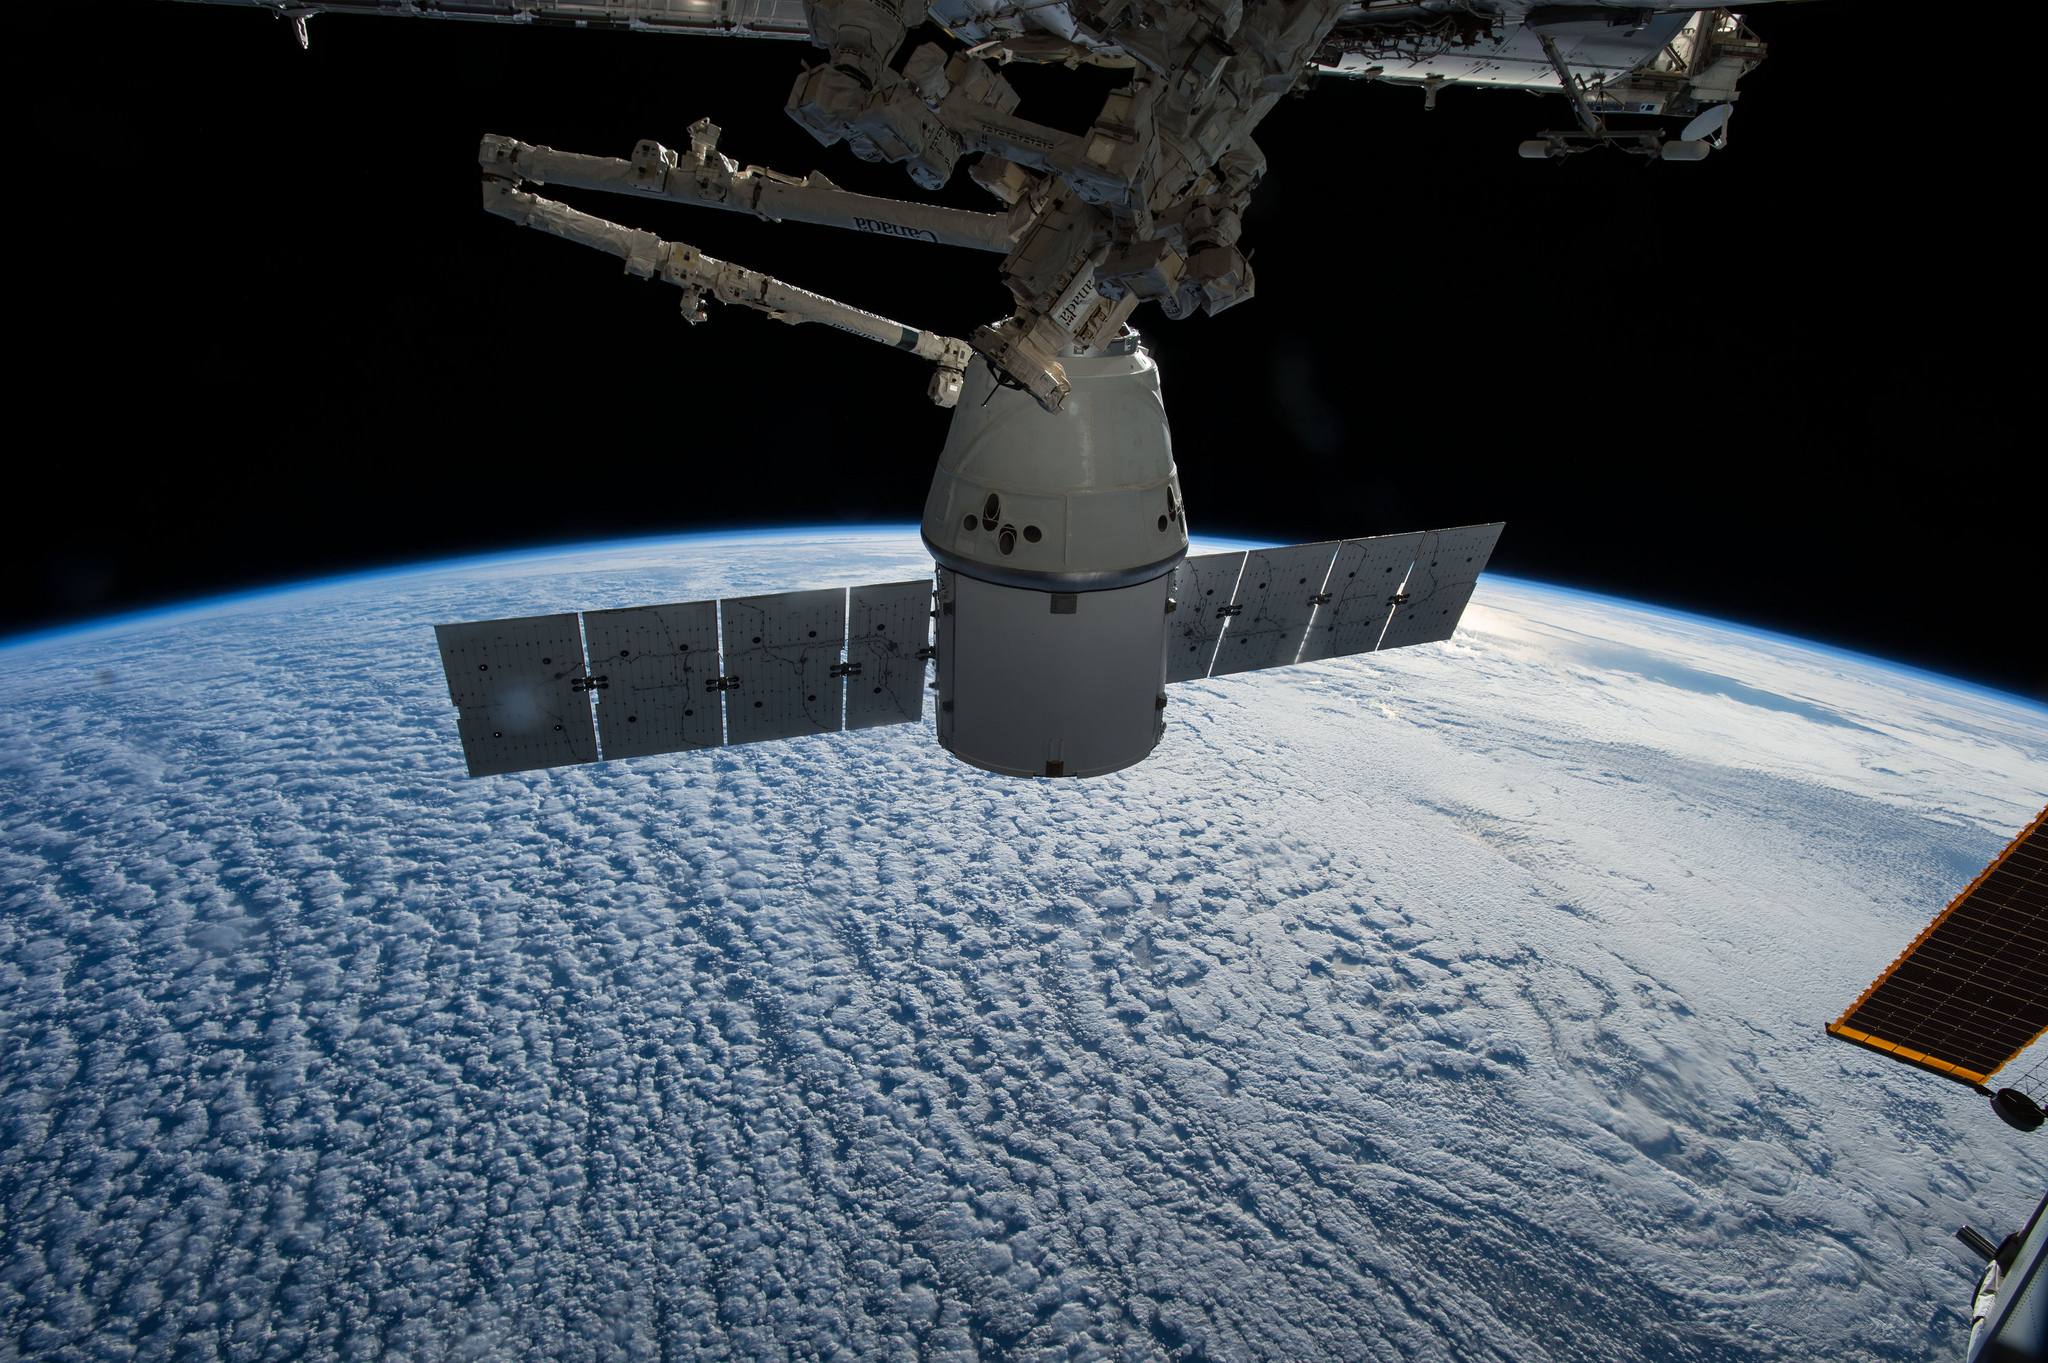 File photo of a SpaceX Dragon supply ship at the International Space Station. Credit: NASA